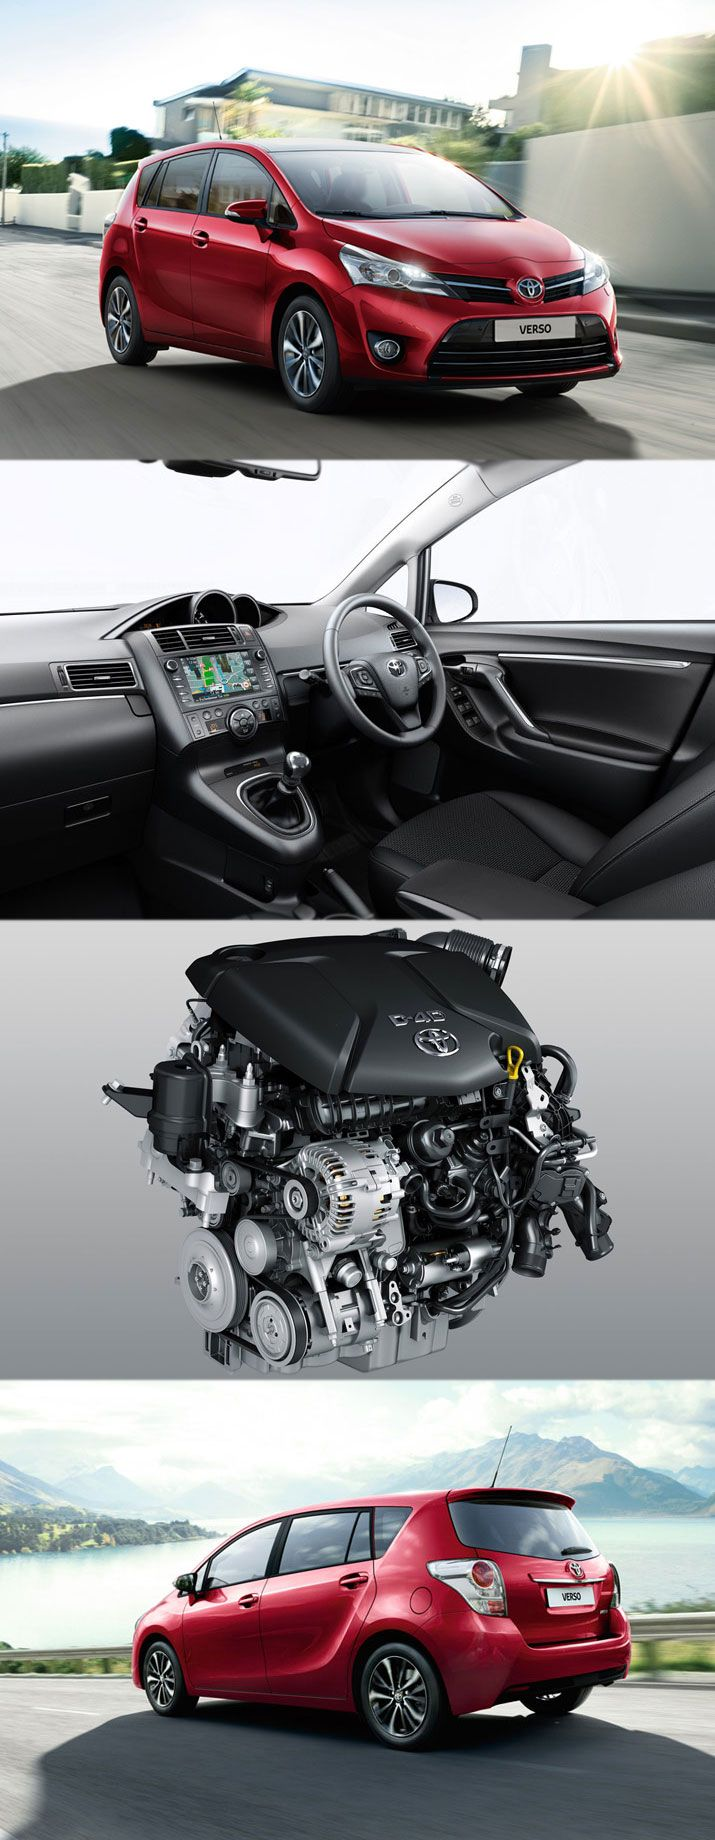 Verso is an impressive seven seater by toyota toyotaverso engines euroncap read full